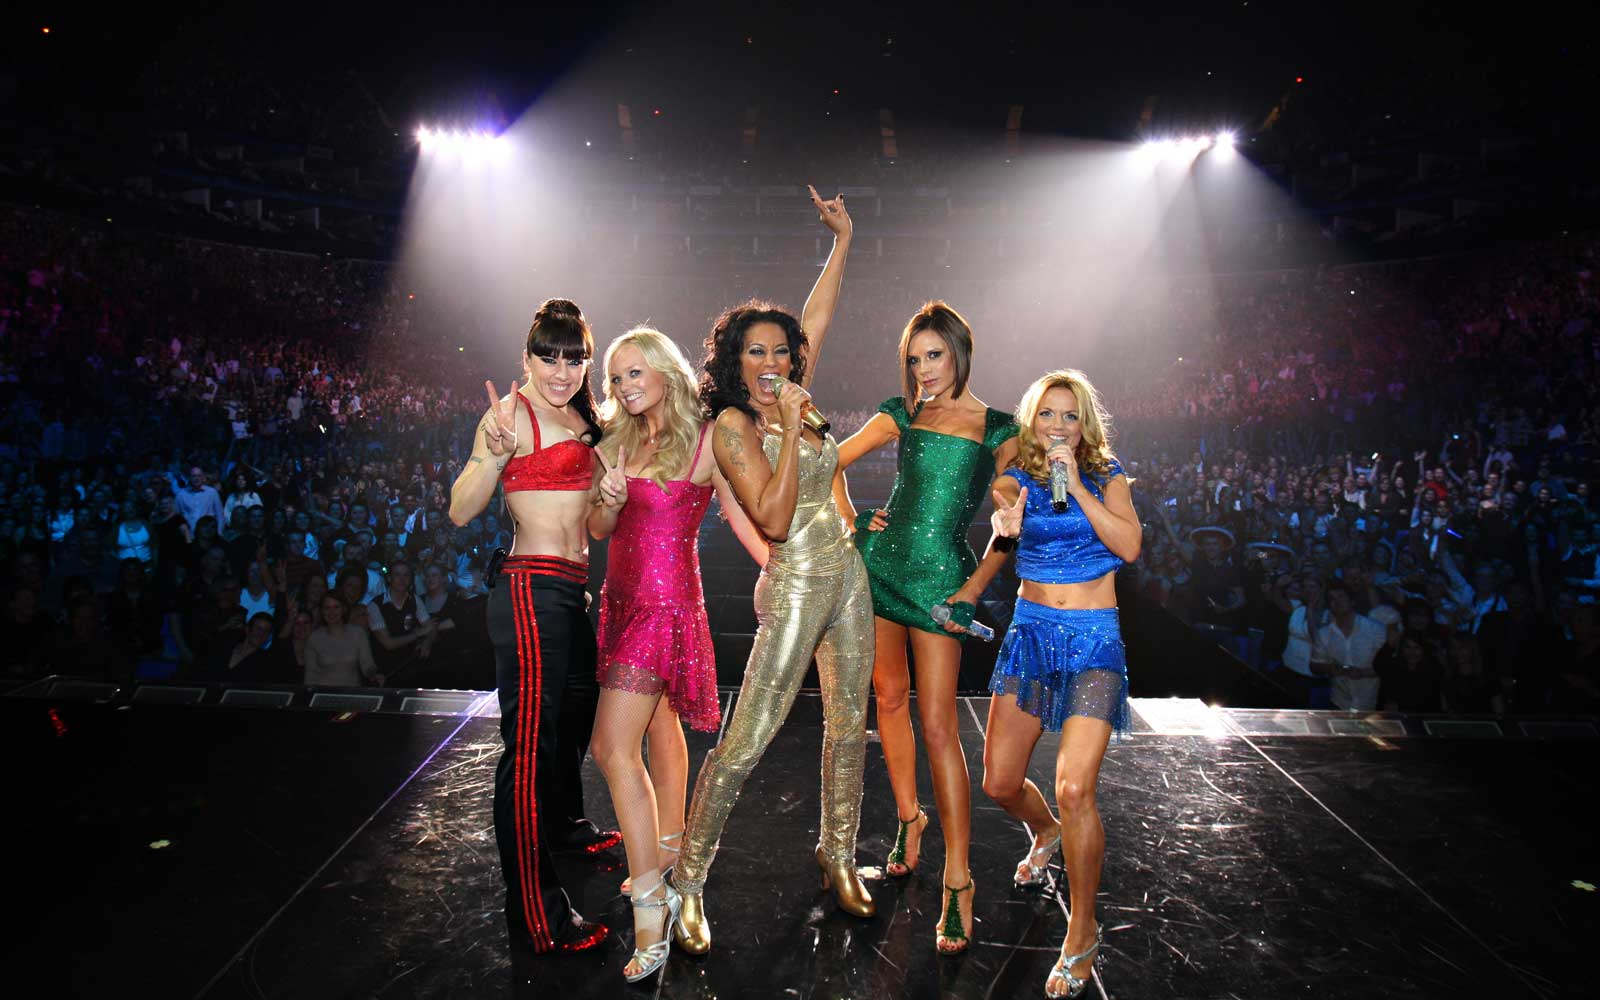 Spice Girls World Tour 2007: London - Exclusive Performance